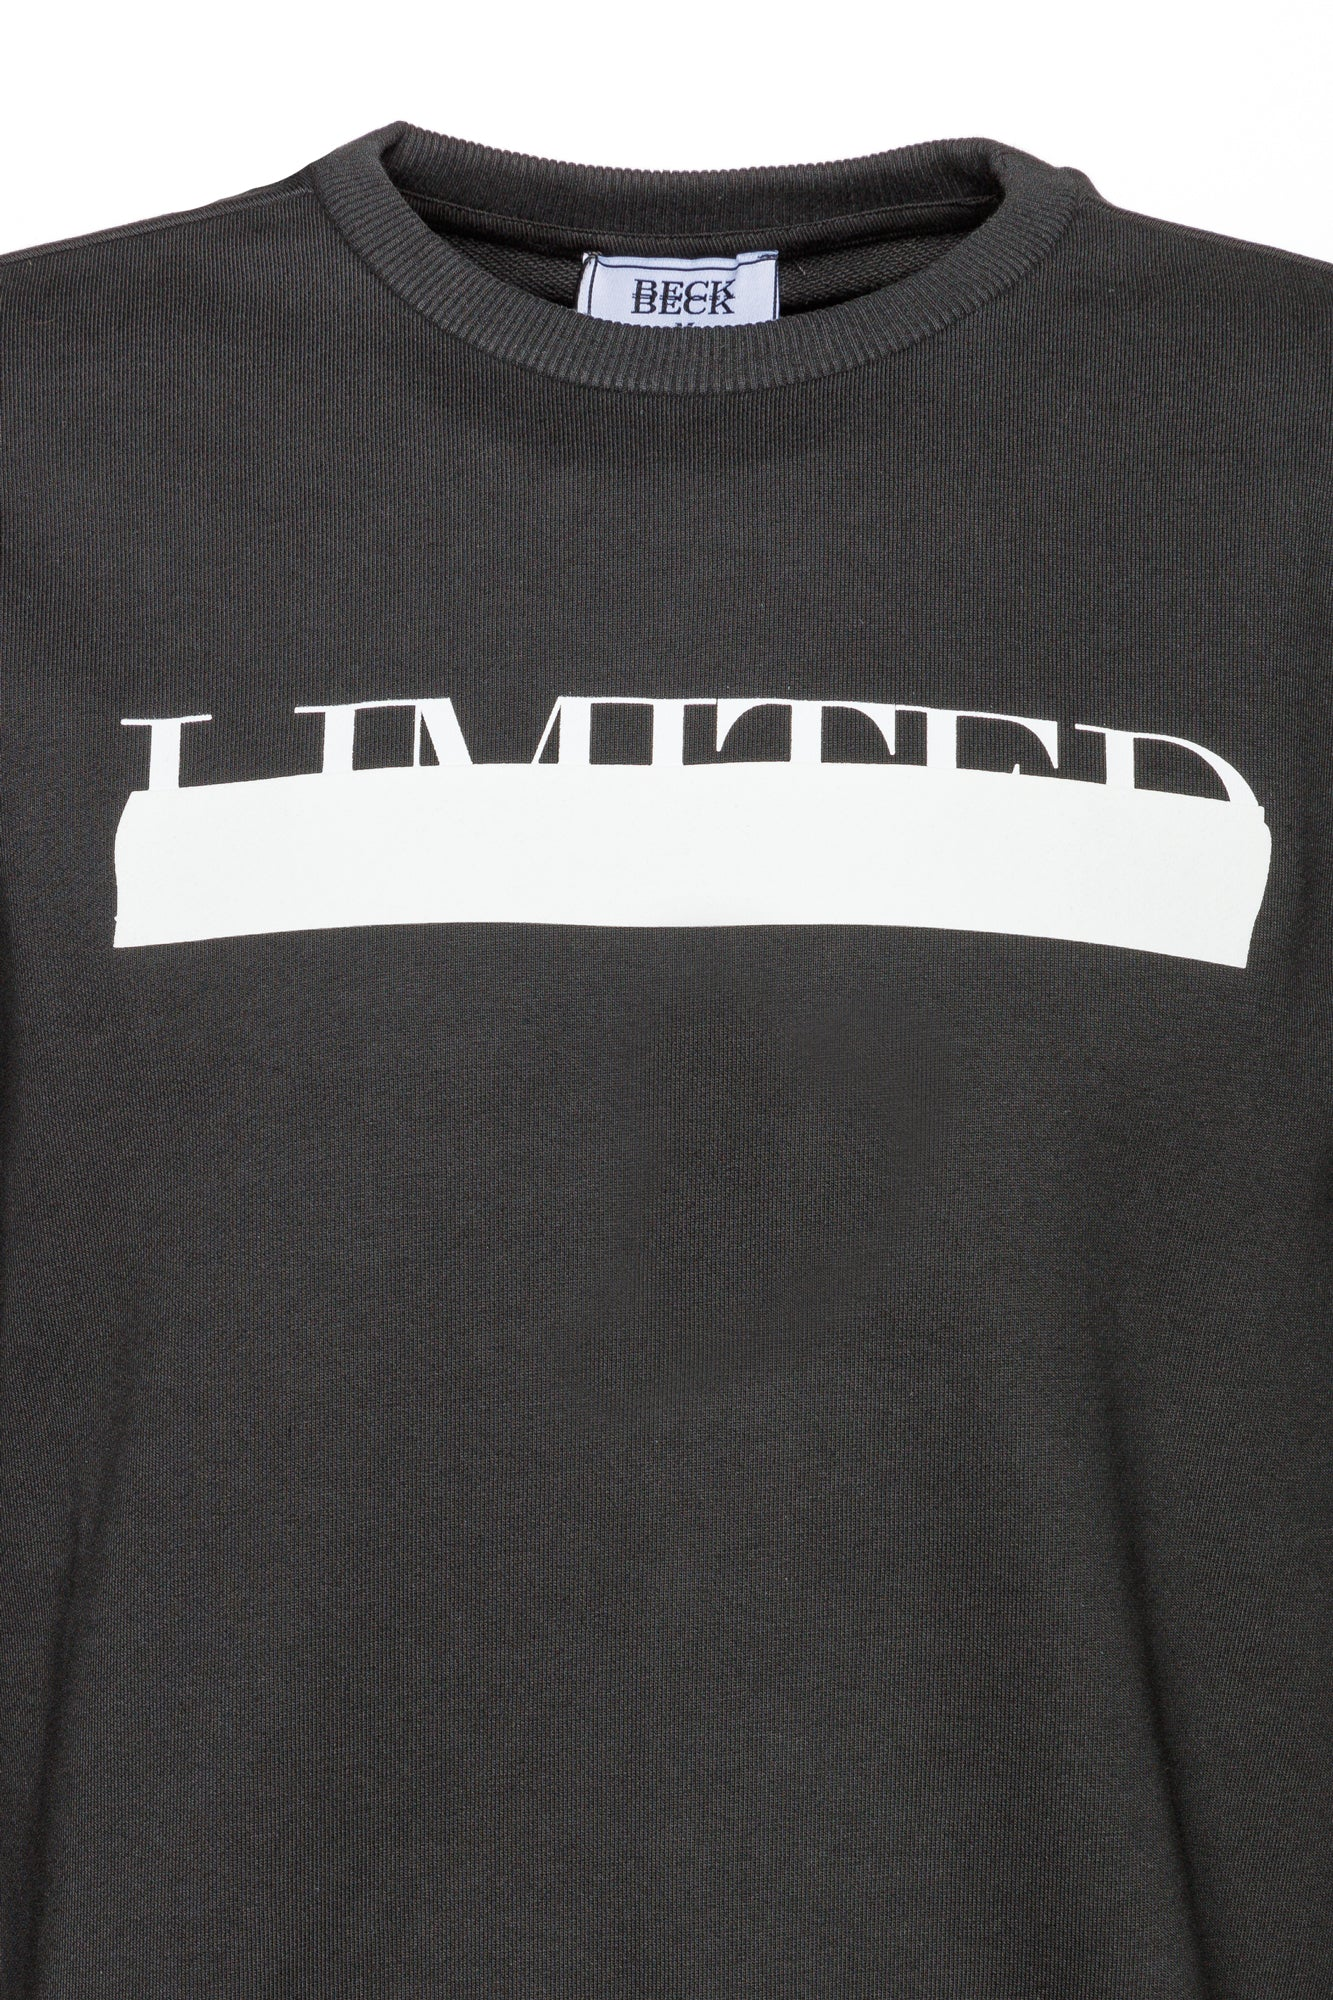 "BECK TO BECK Sweatshirt ""LIMITED"" 2019"